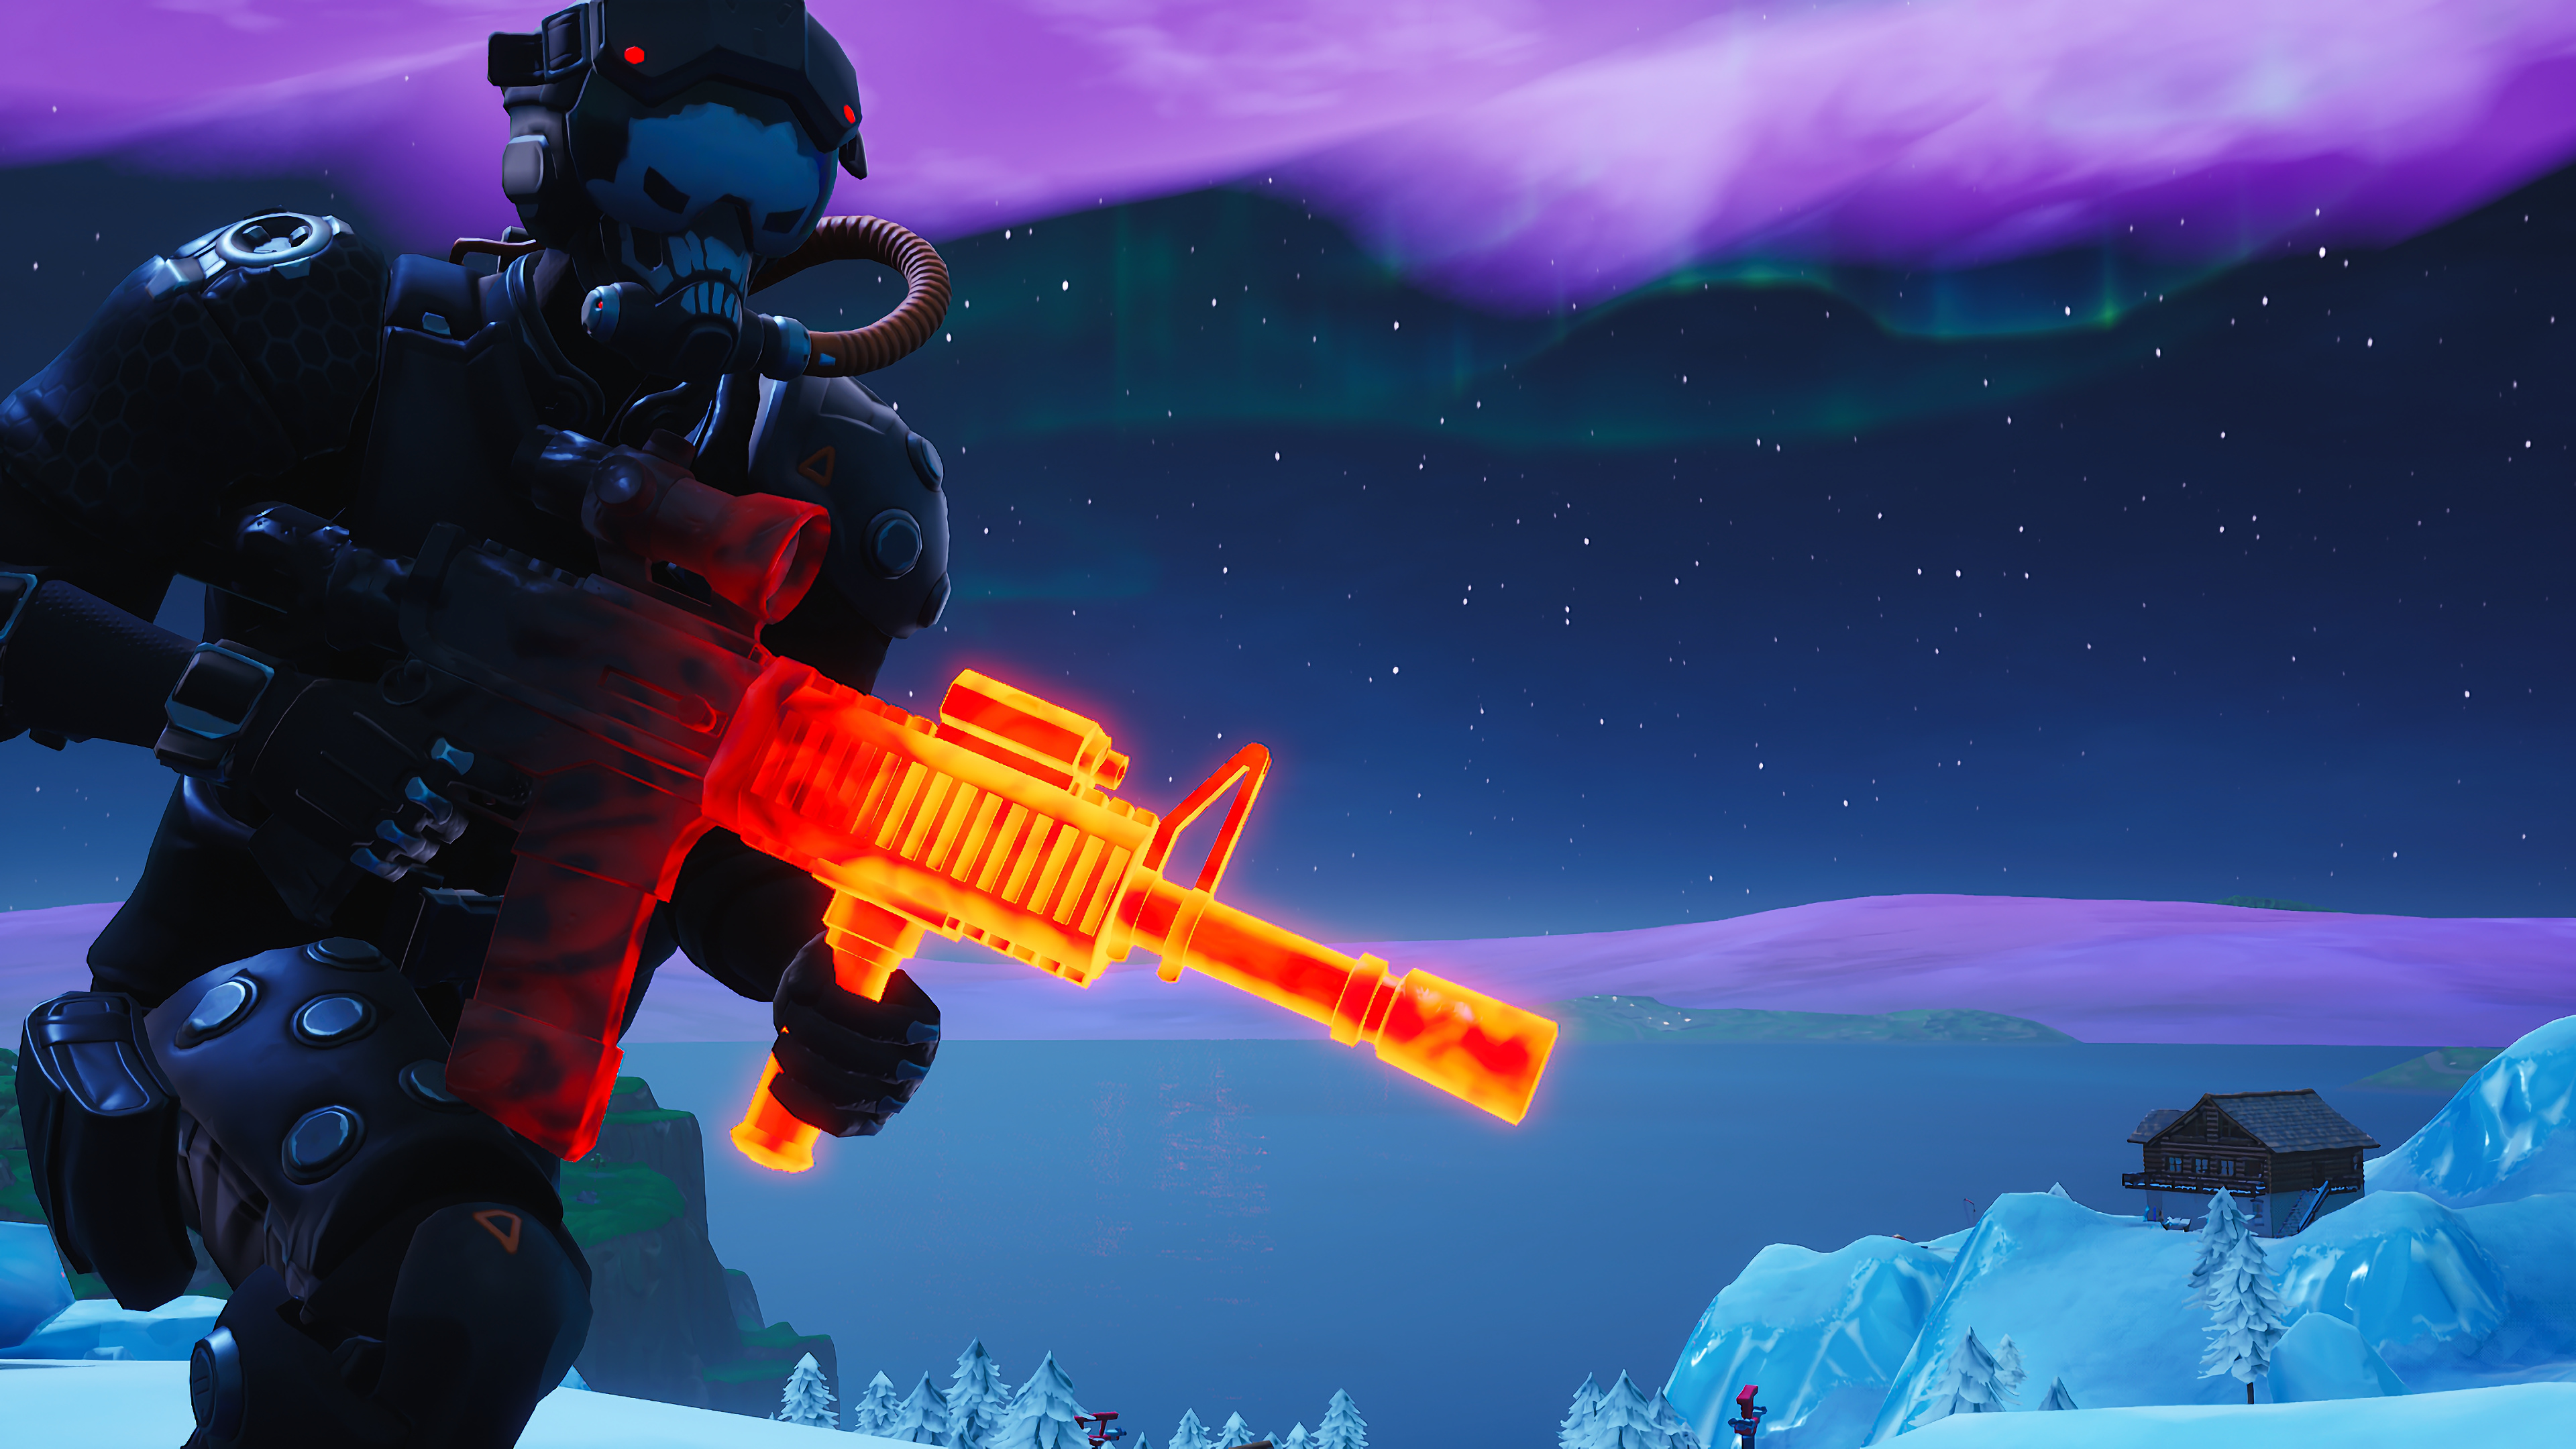 Supersonic Fortnite Wallpapers 2020 Lit It Up